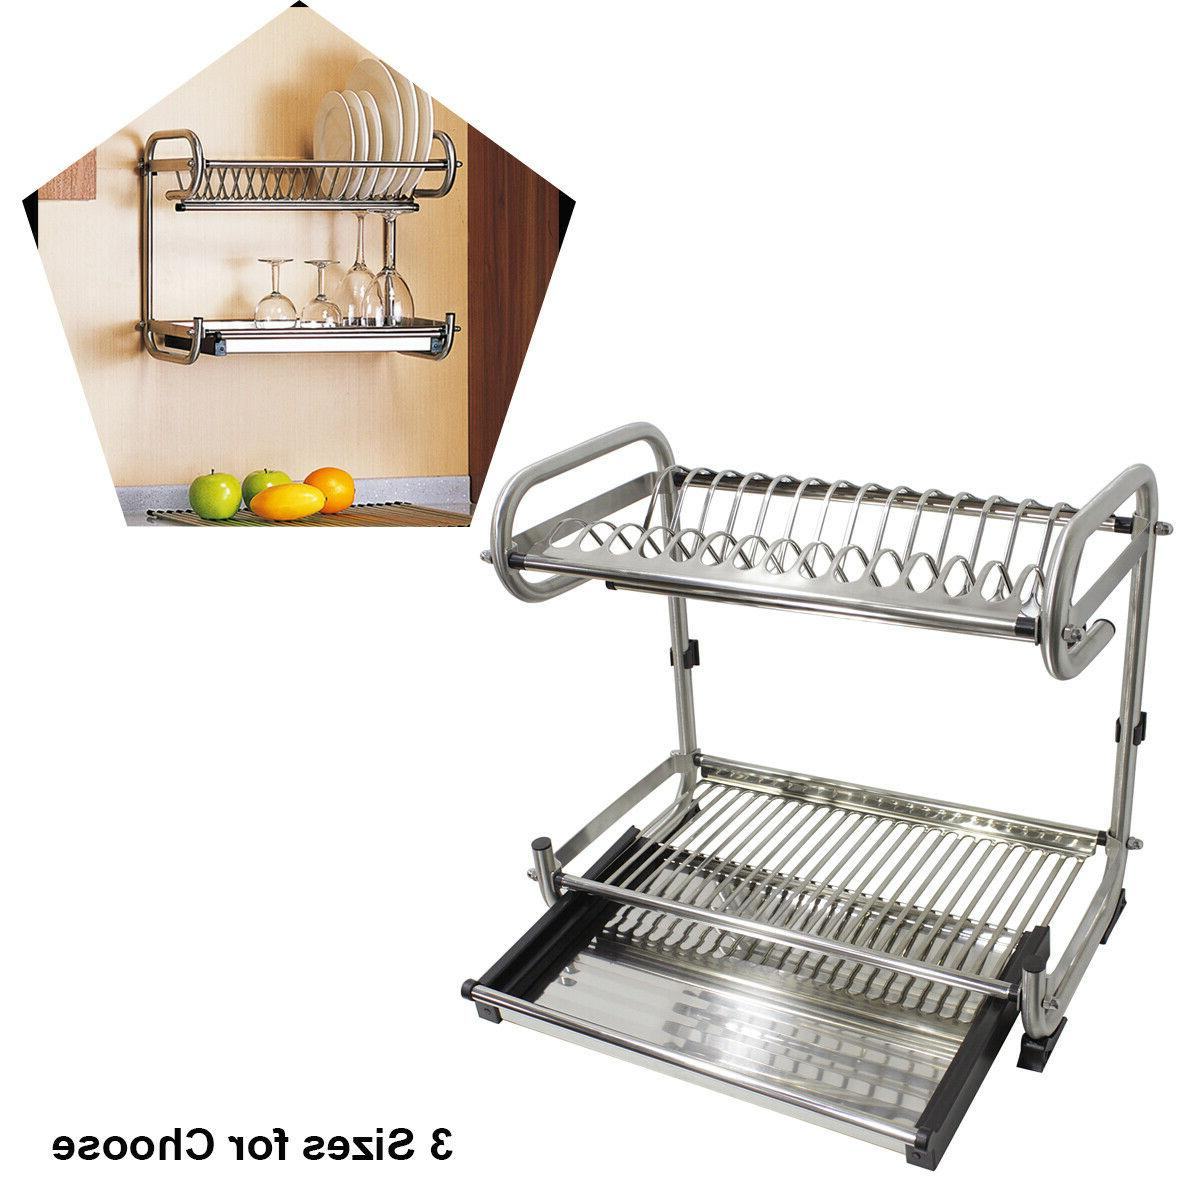 2 tier stainless steel dish rack drying